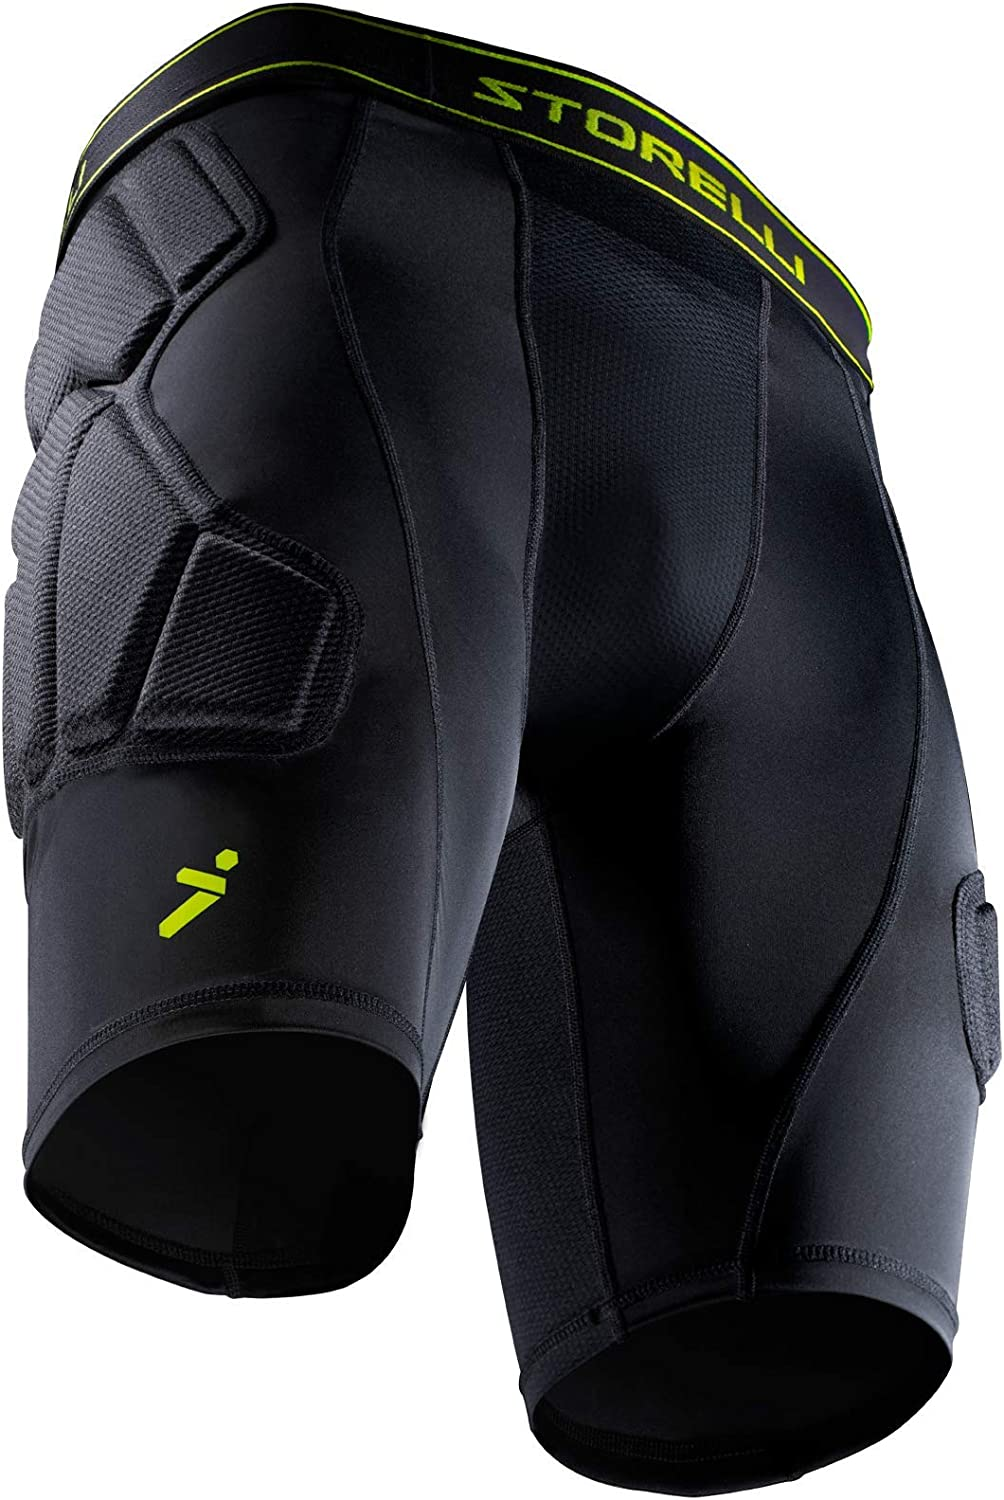 Storelli BodyShield Unisex Goalkeeper Sliders | Padded Soccer Sliding Undershorts | Enhanced Lower Body Protection